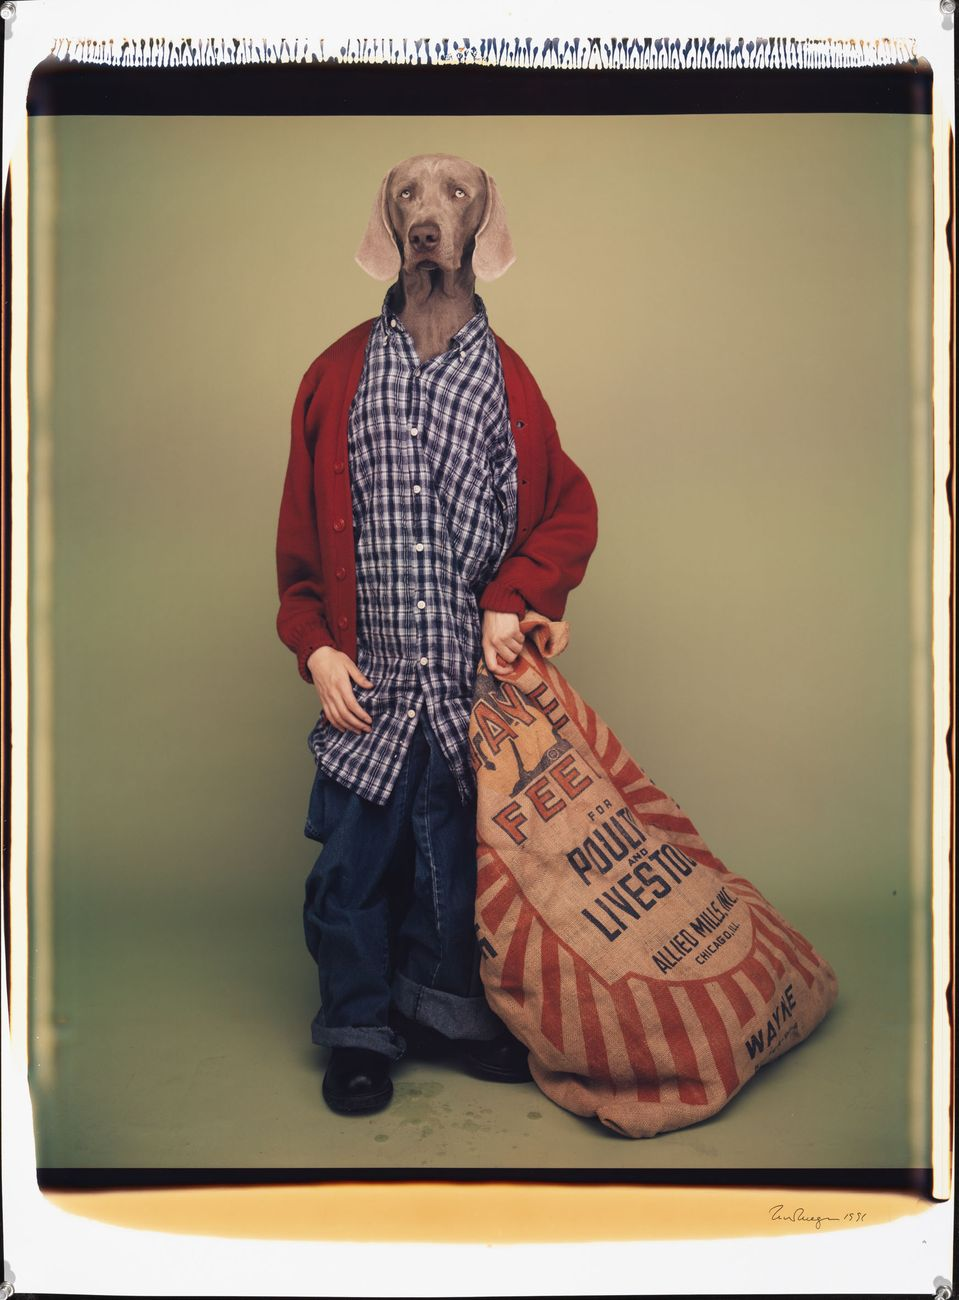 William Wegman, Farm Boy, 1996. Proprietà dell'artista © William Wegman